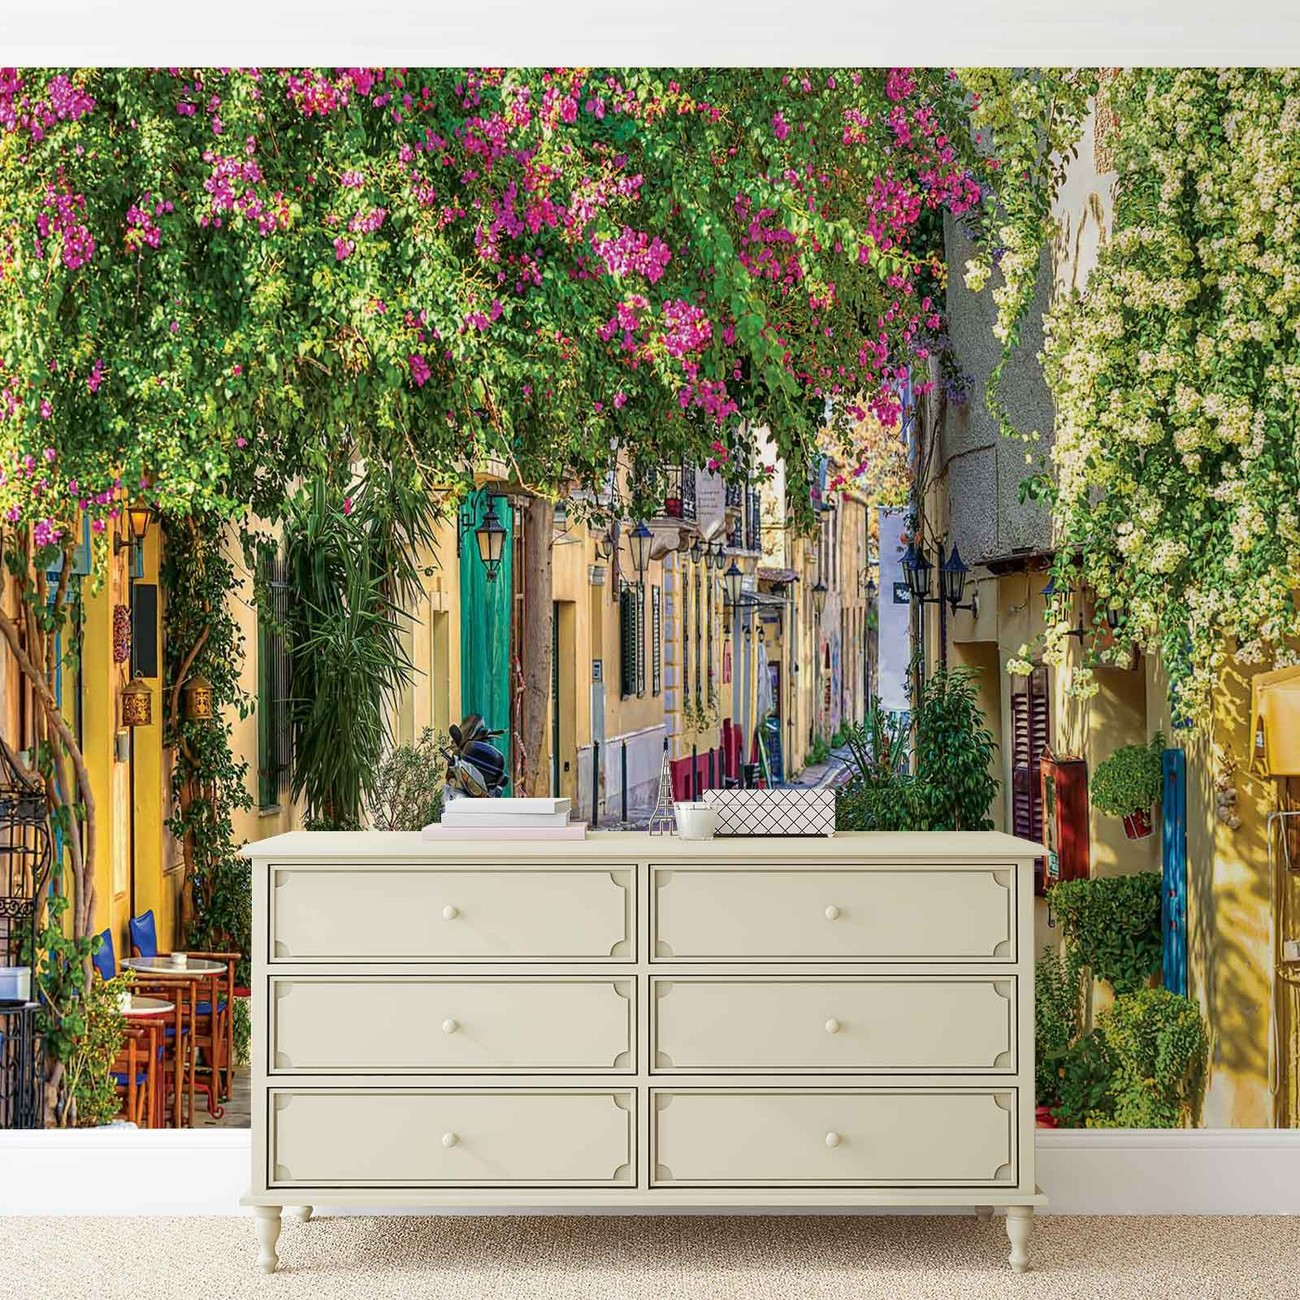 Flower street way caf wall paper mural buy at europosters for Cafe wall mural